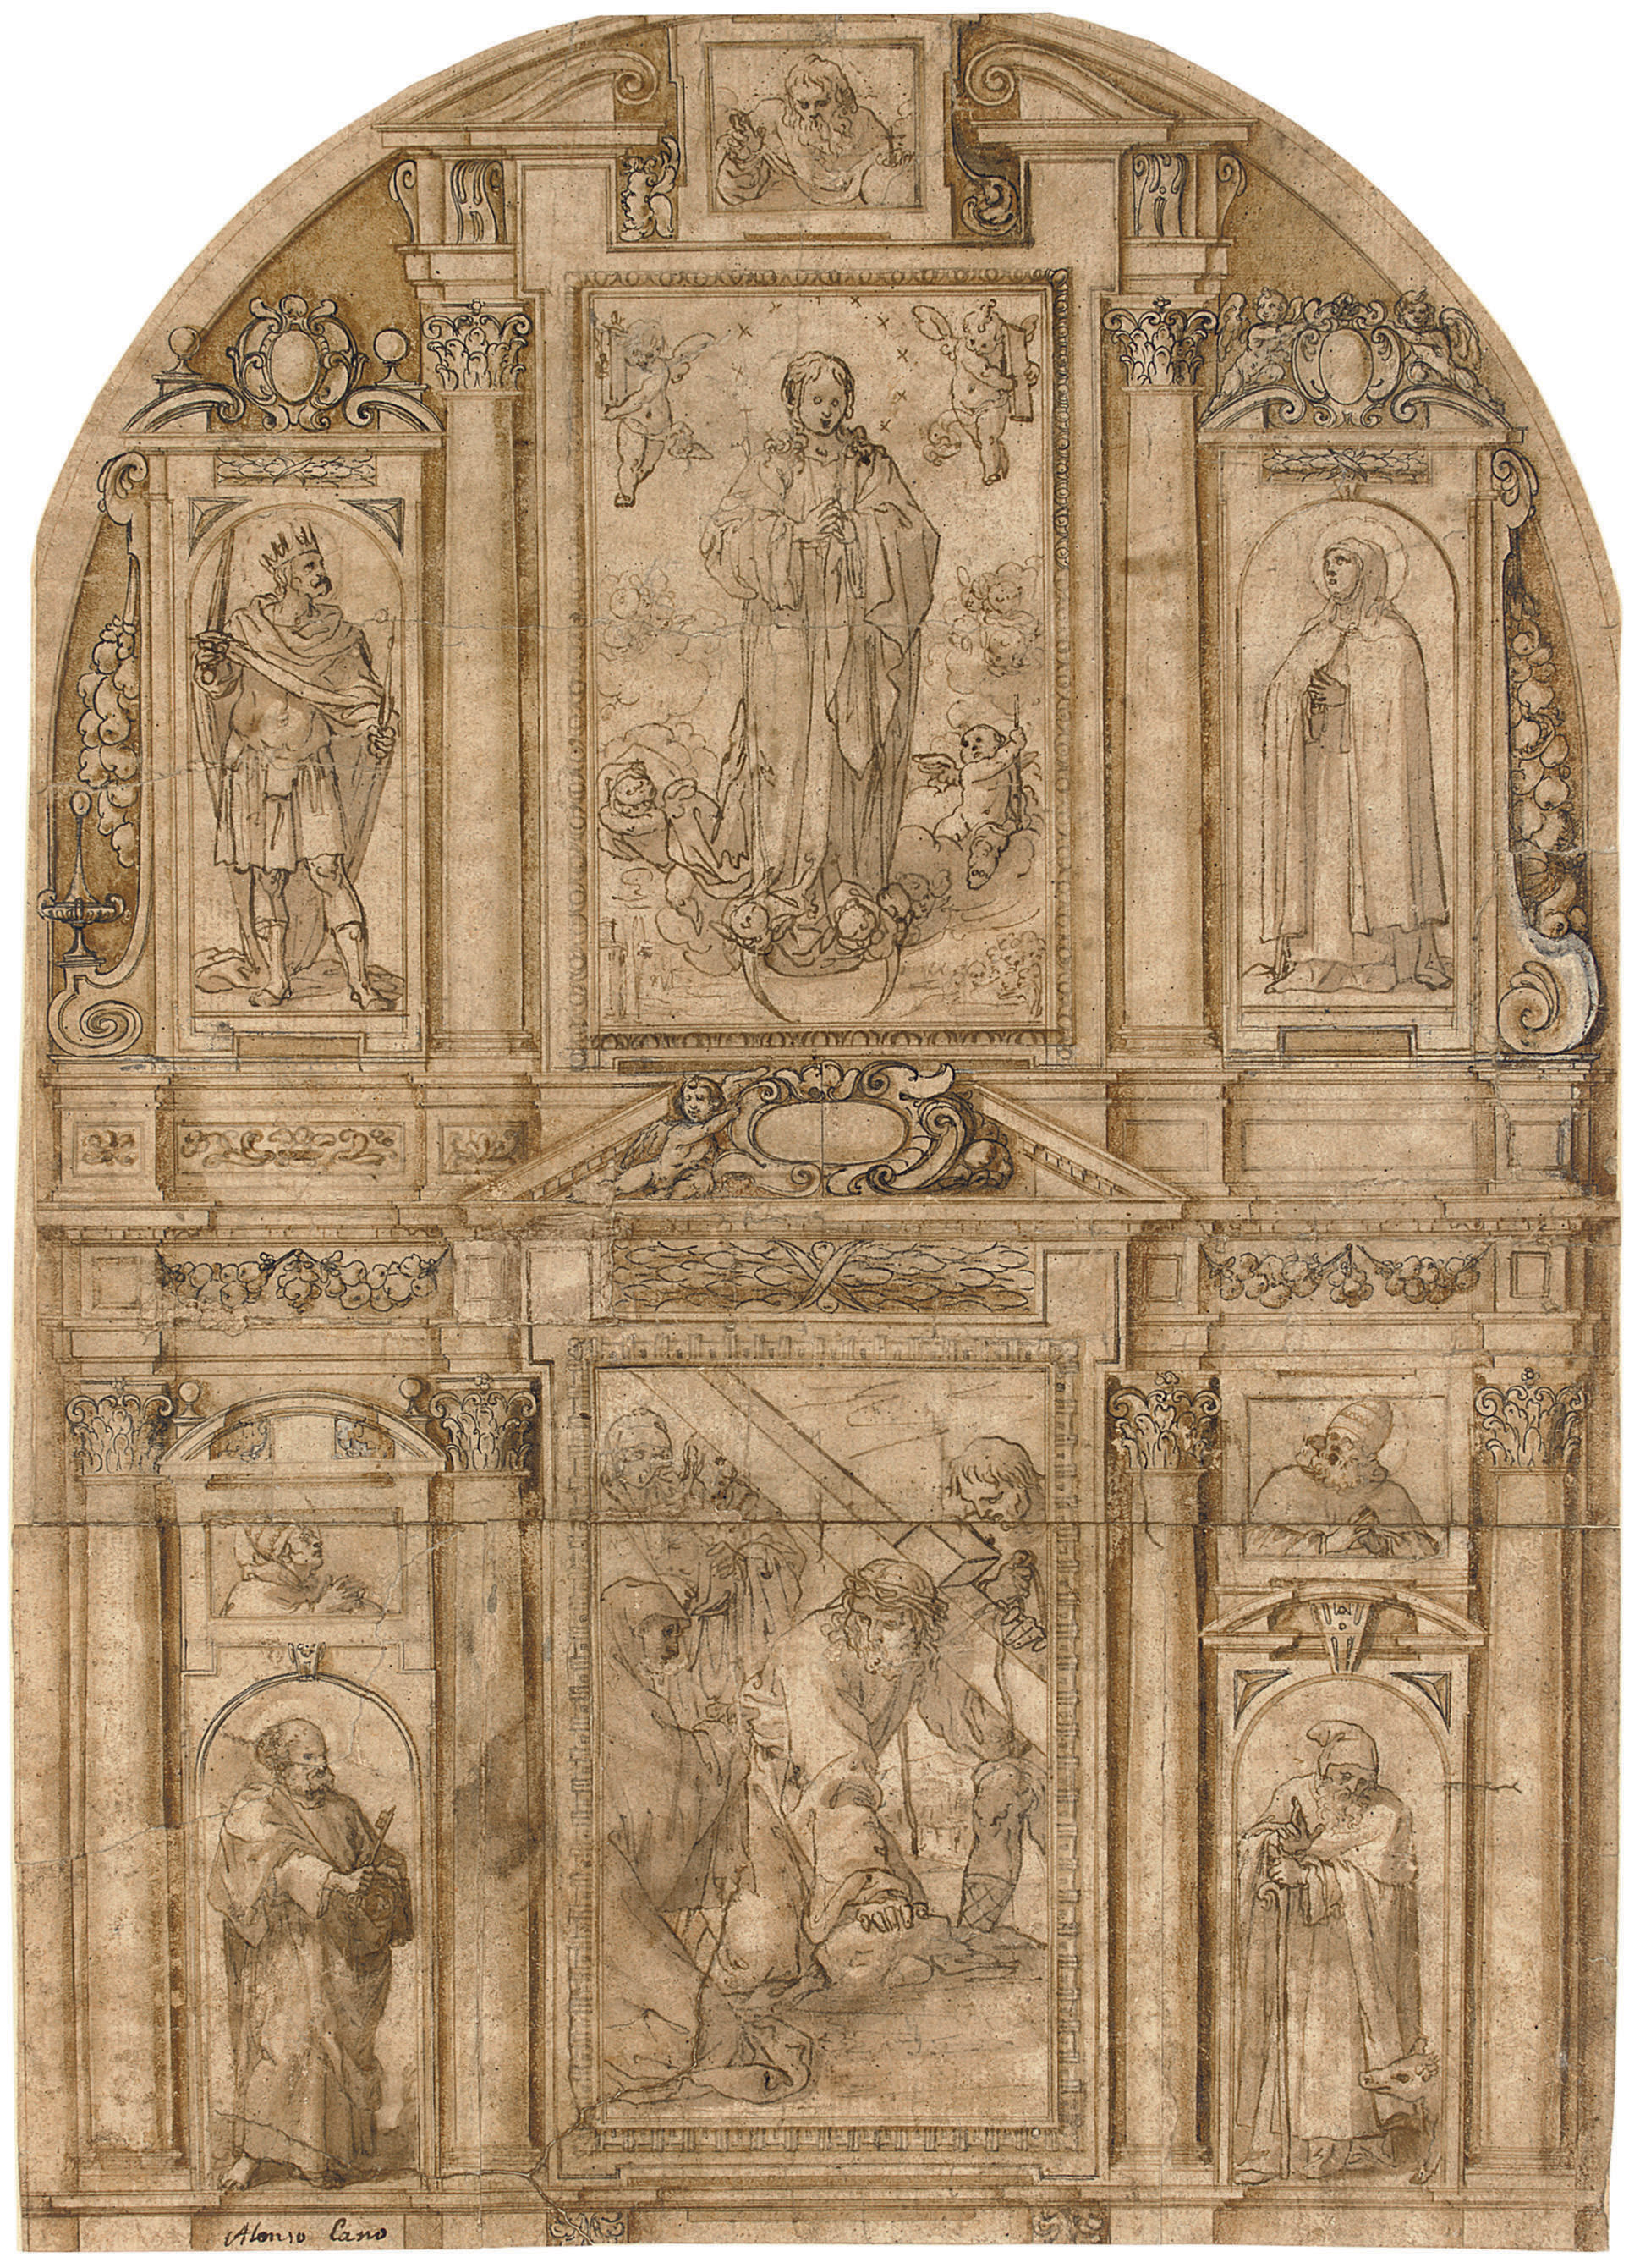 Design for an elaborate altarpiece with a central panel of The Way to Calvary with Saint Veronica, flanked by panels of Saint Peter and Saint Anthony Abbot and two half-length bishop saints, surmounted by a panel of the Immaculate Conception, surrounded by panels possibly of Saints Clare and Ferdinand of Seville, God the Father above